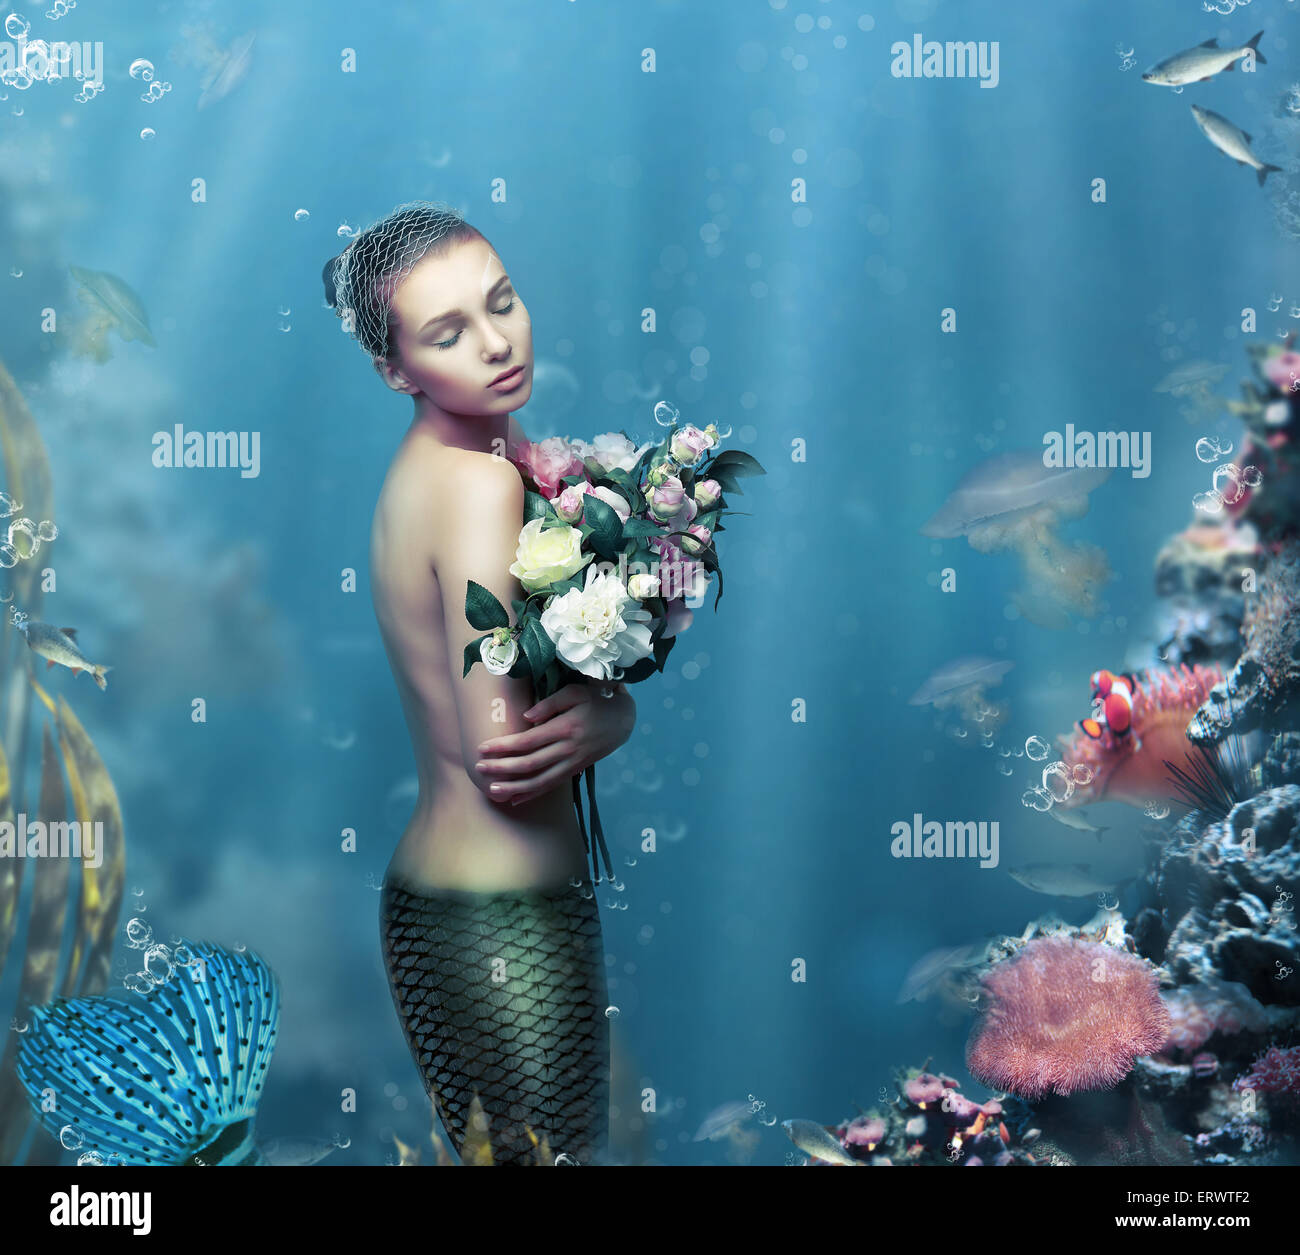 Inspiration. Fantastic Woman with Flowers in Water - Stock Image